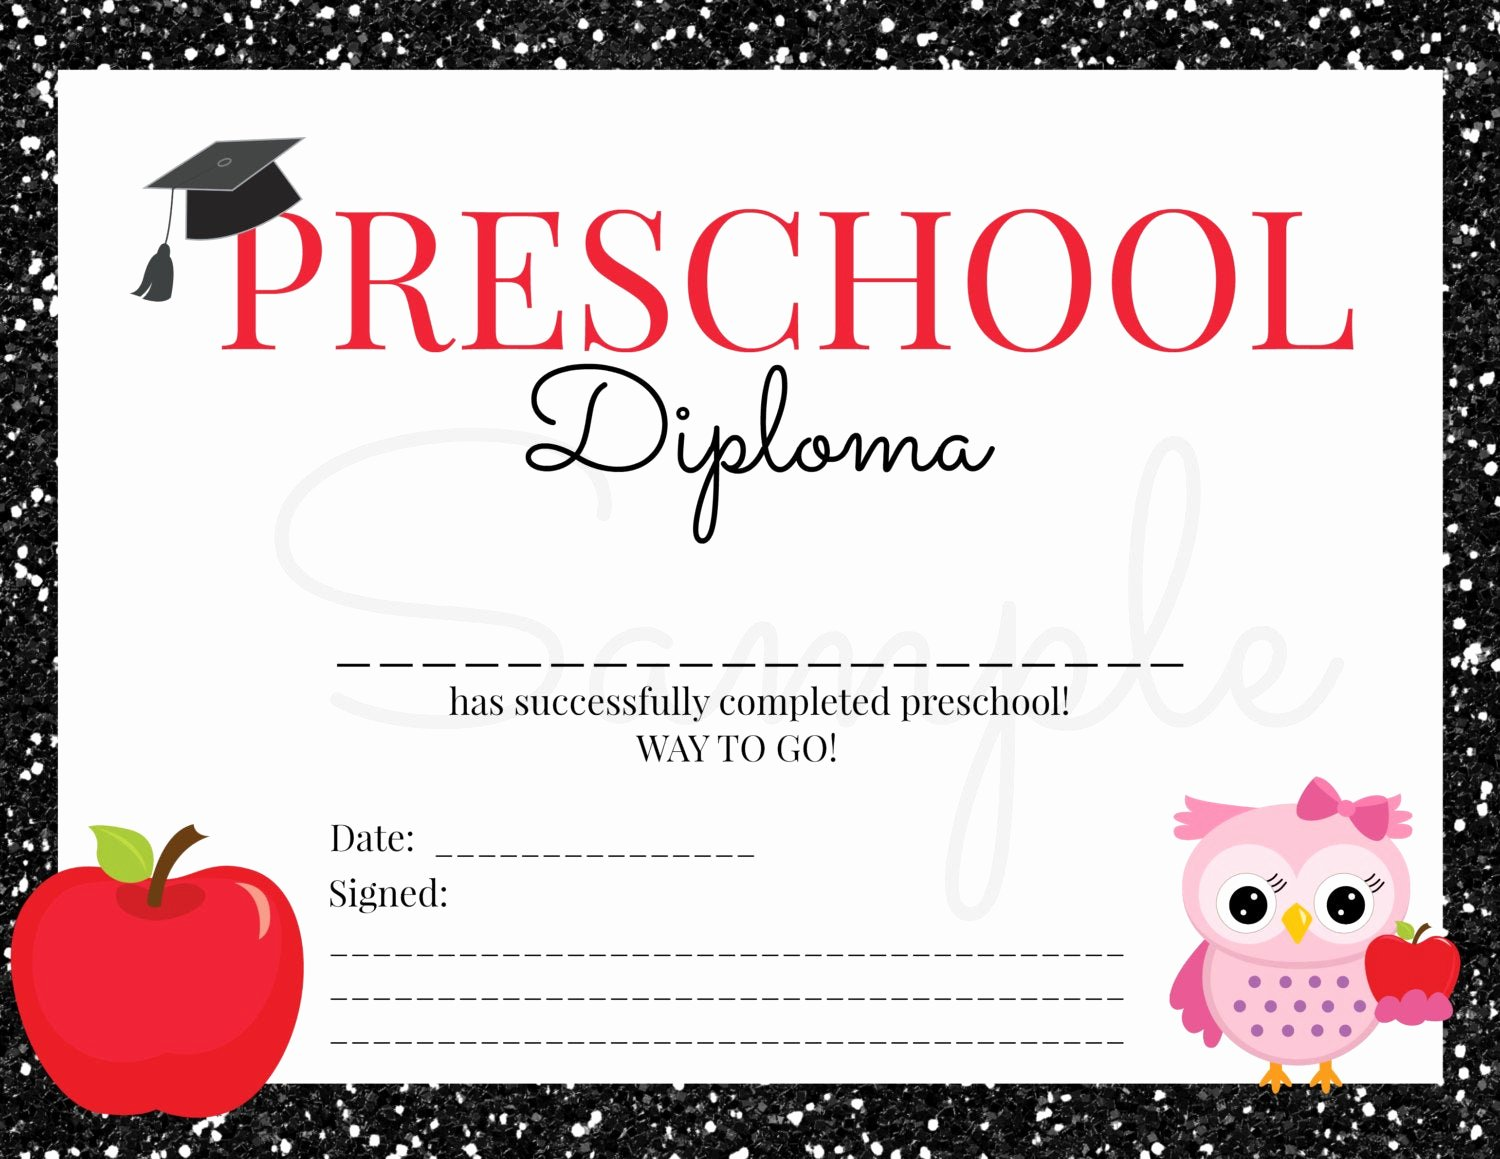 Preschool Diploma Template Free Fresh Instant Download Preschool Graduation Diploma for Girl